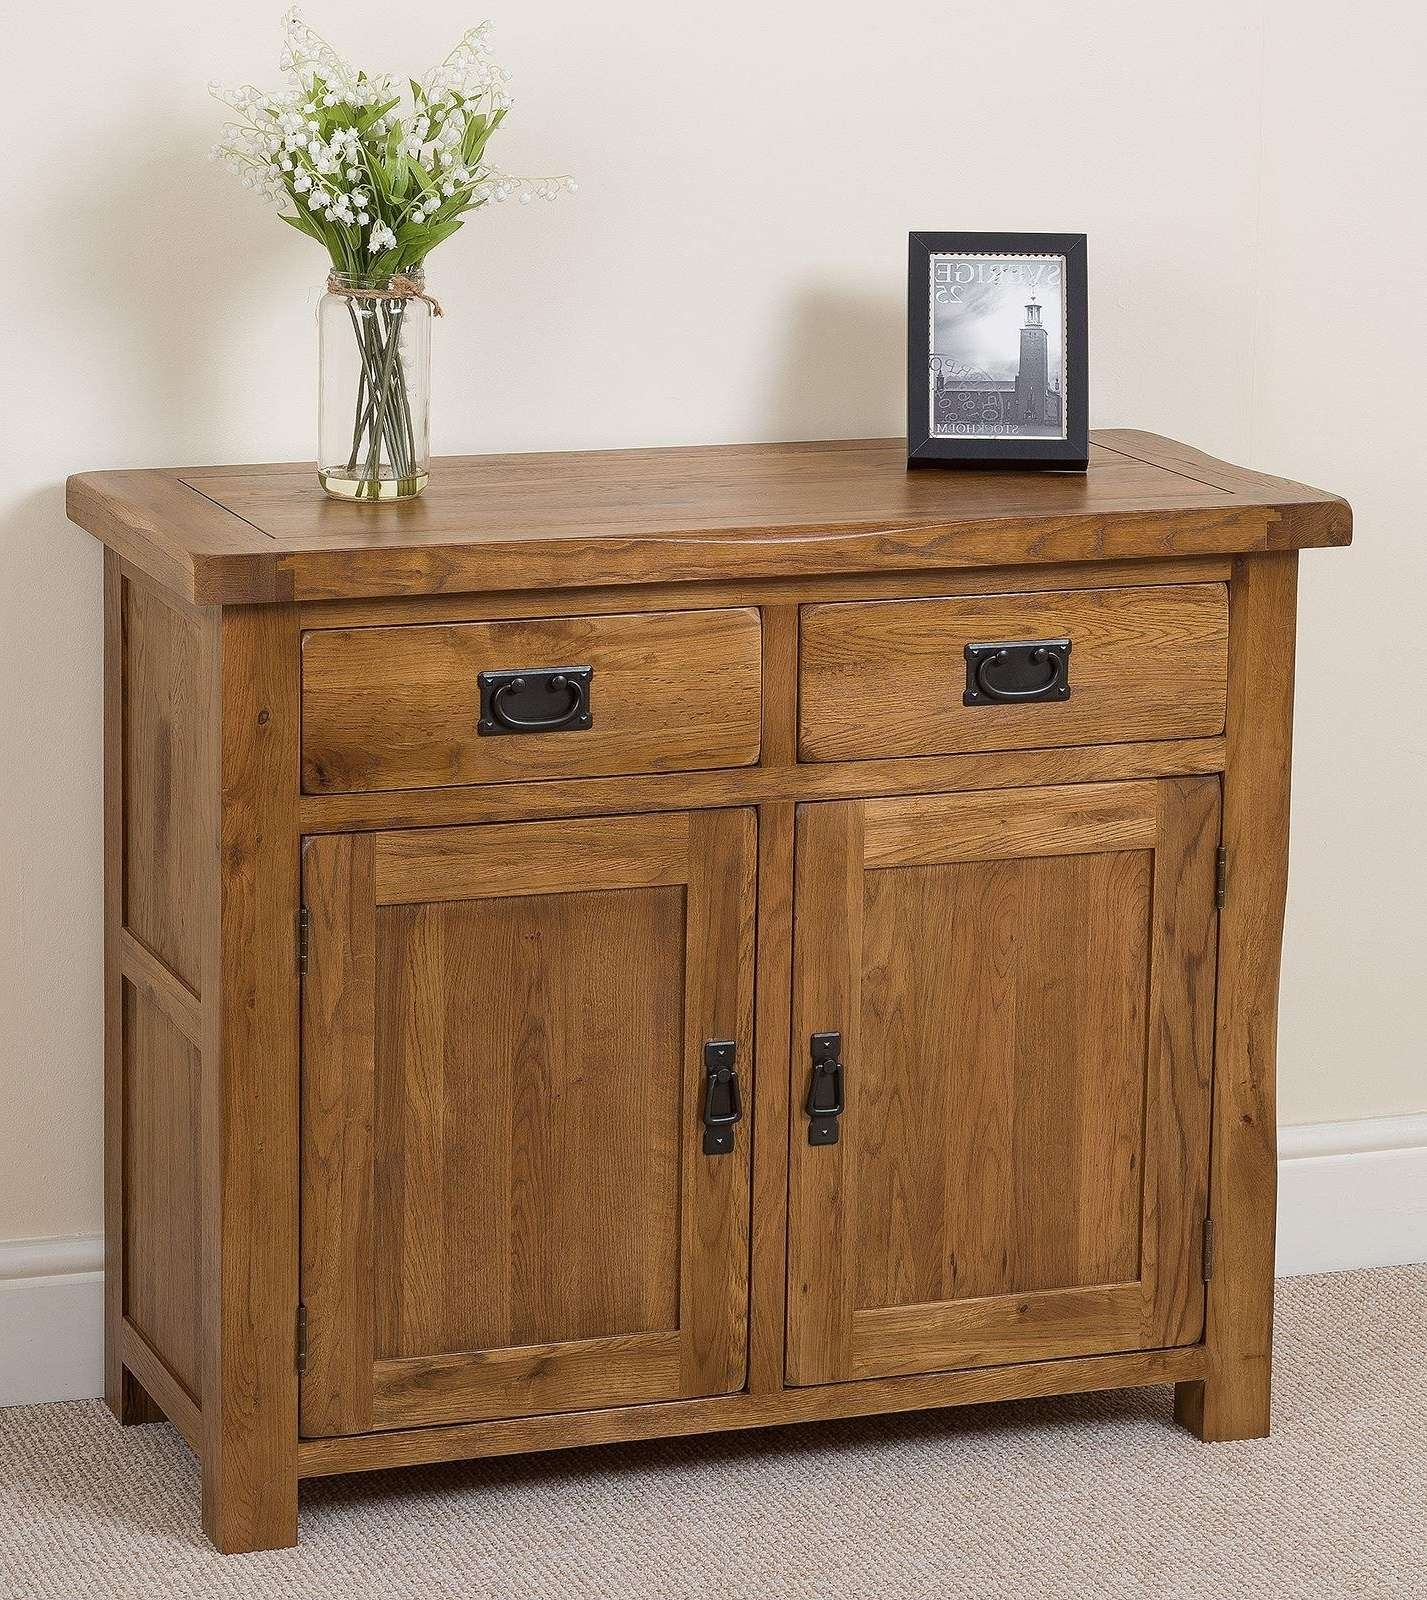 Cotswold Rustic Small Oak Sideboard | Free Uk Delivery With Regard To Solid Oak Sideboards (View 4 of 20)